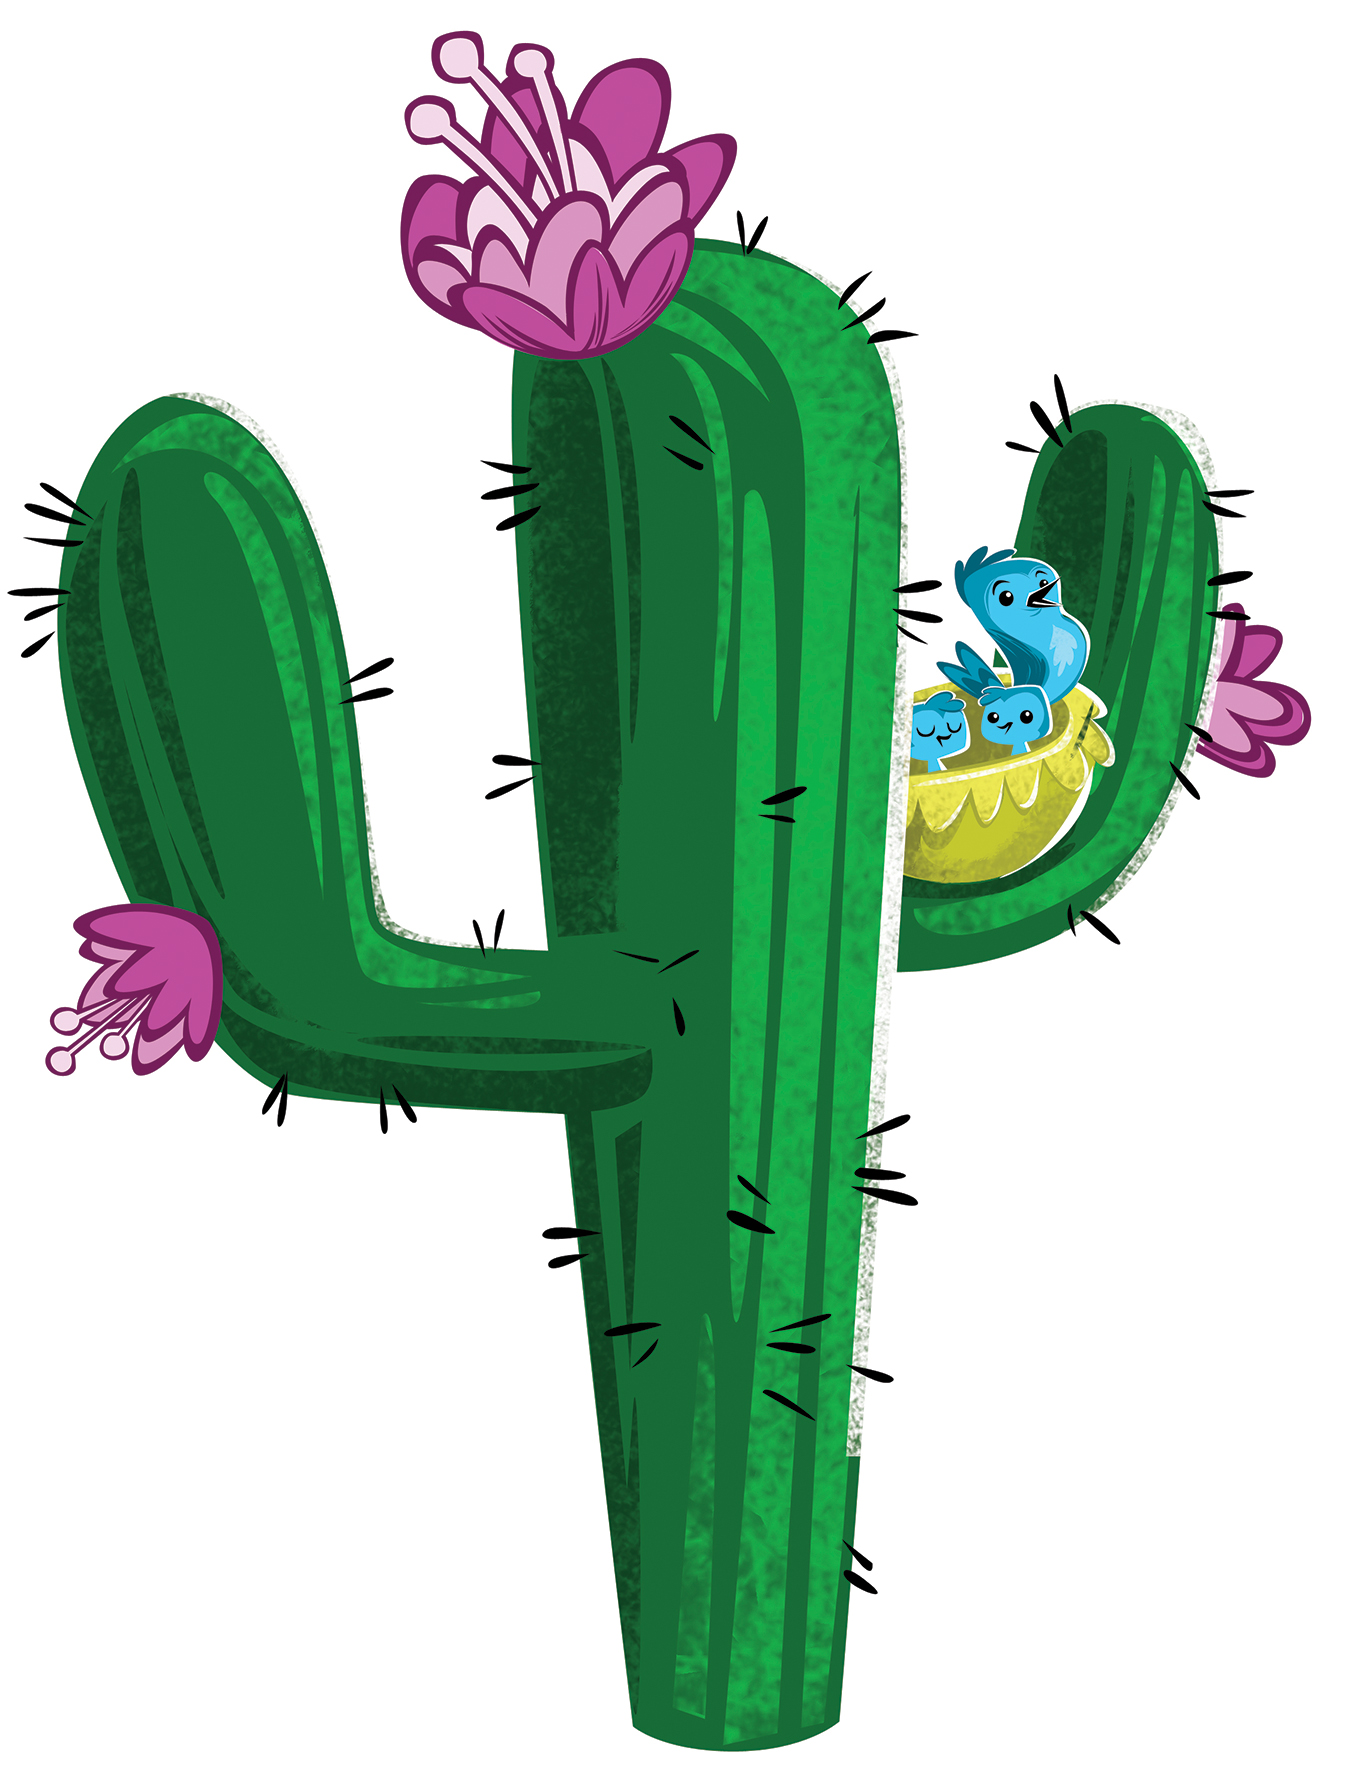 Cactus fiesta. Mexican clipart free download